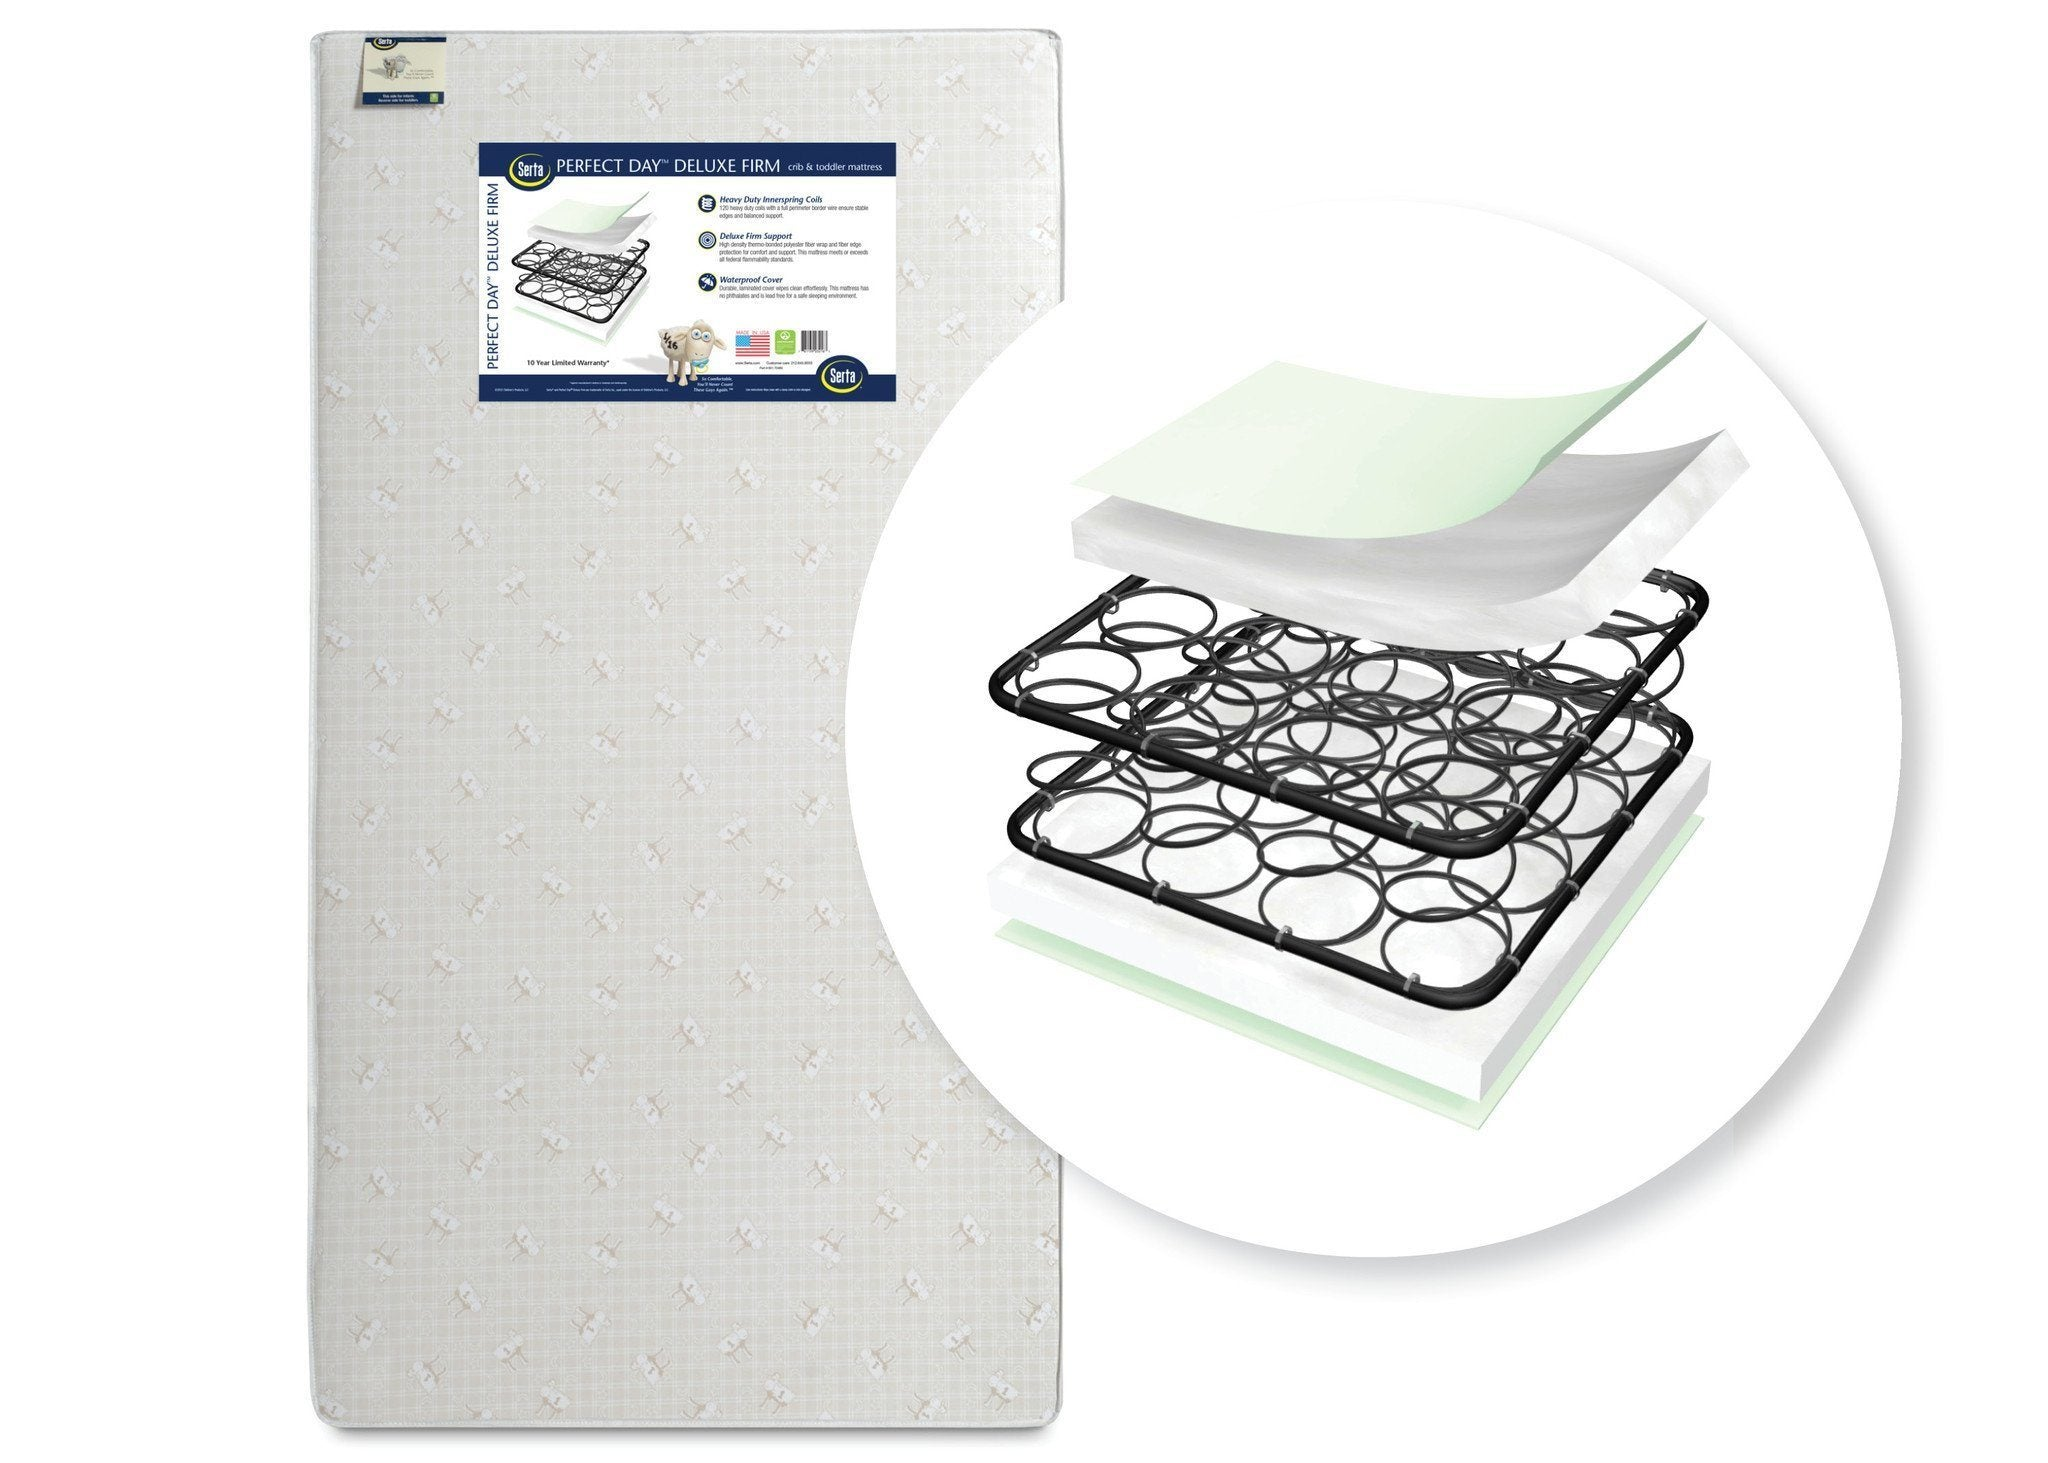 "Serta Perfect Dayâ""¢ Deluxe Firm Crib & Toddler Mattress Front View a1a"